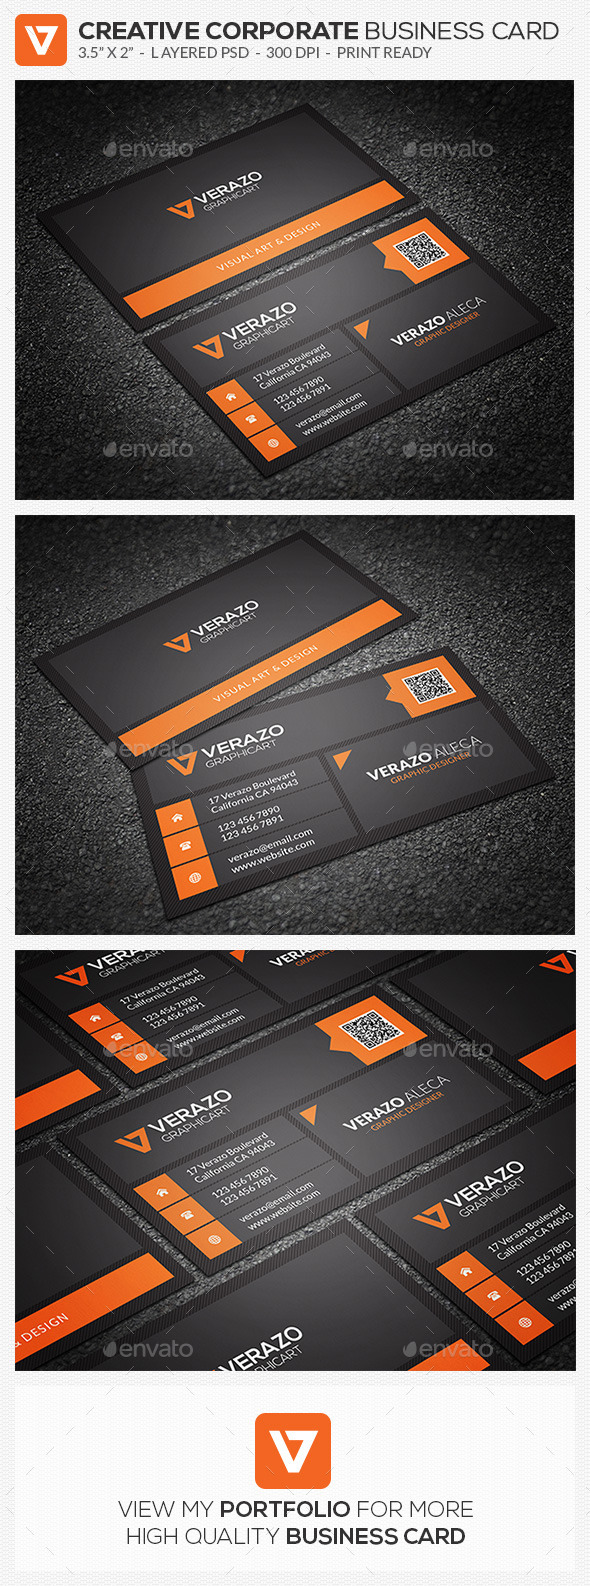 Creative Metro Style Business Card 74 - Creative Business Cards